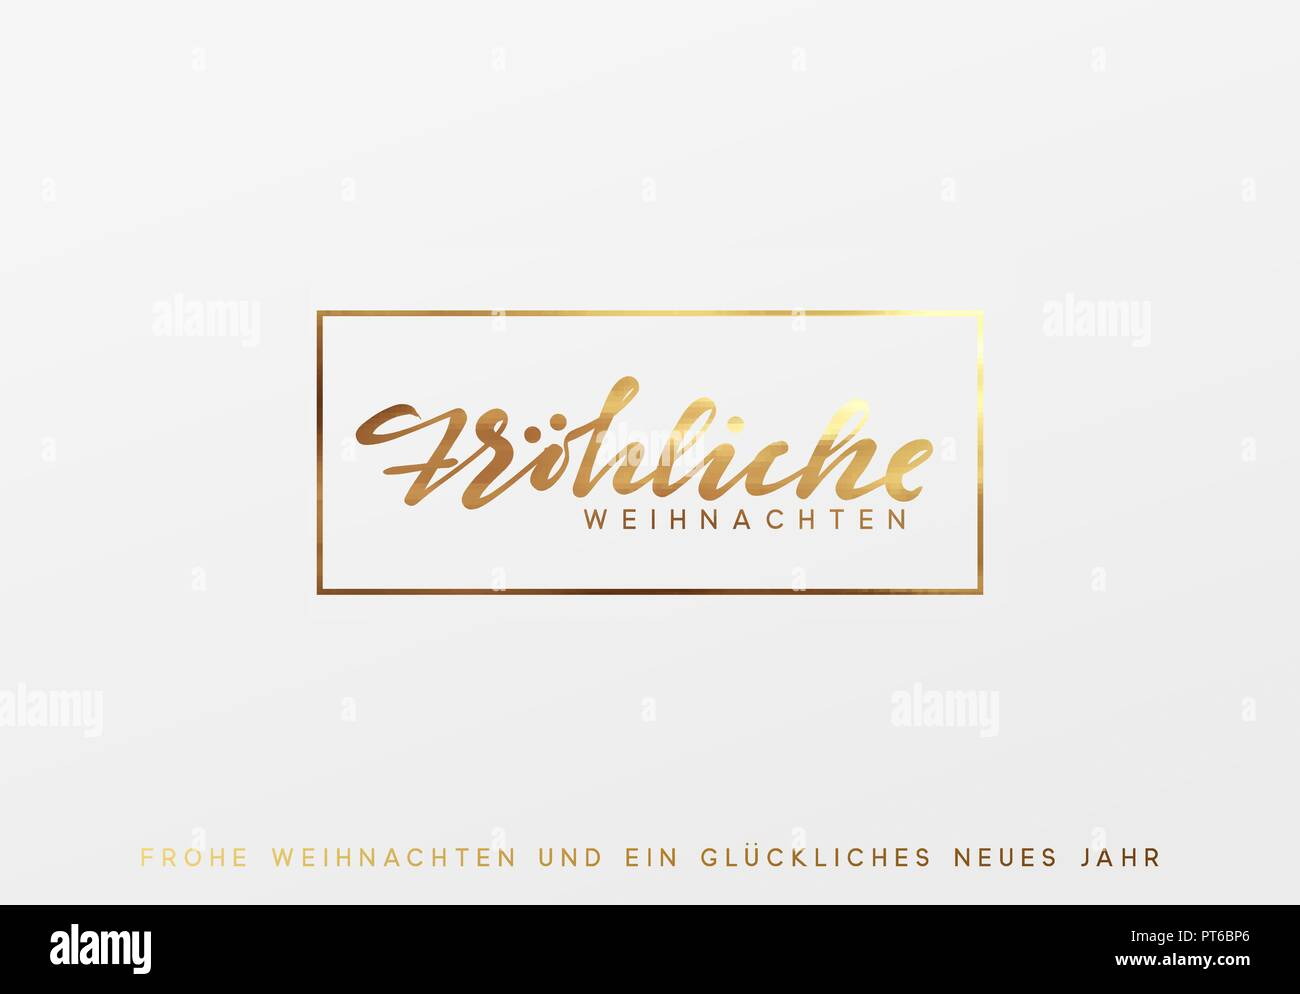 German text Frohliche Weihnachten. Merry Christmas gold lettering in a frame background. - Stock Image